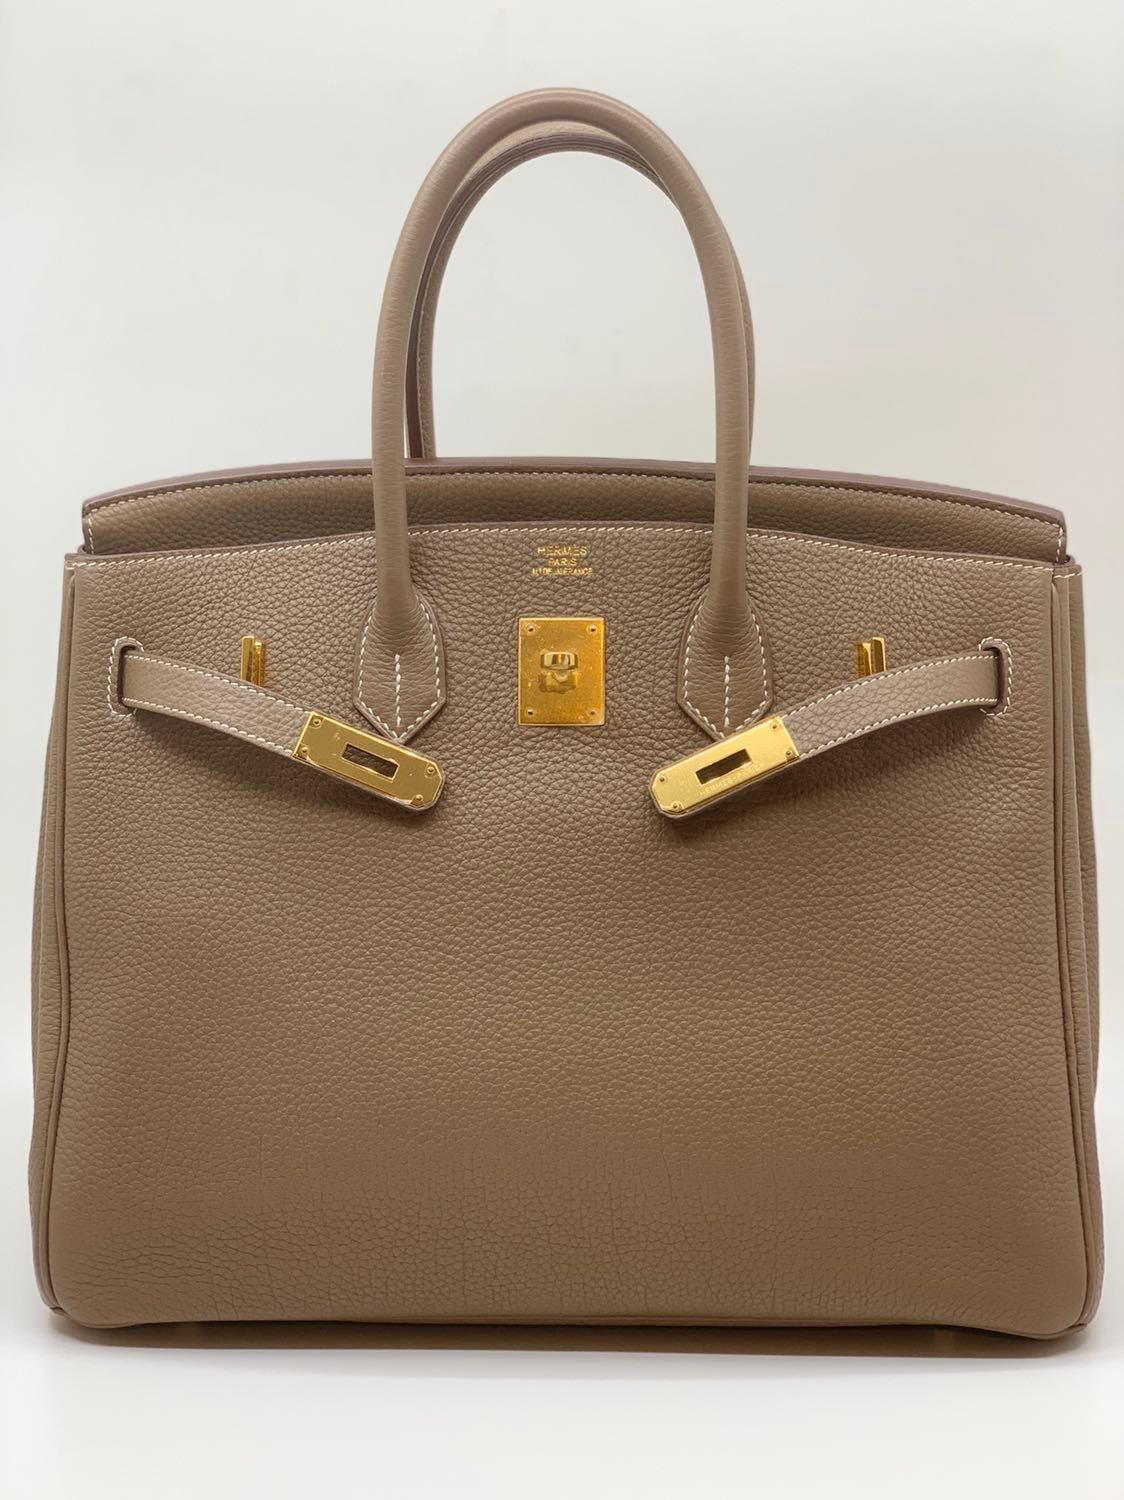 954752a9e368 RARE at Bargain Price. Hermes Birkin 35 Etoupe GHW, Luxury, Bags ...